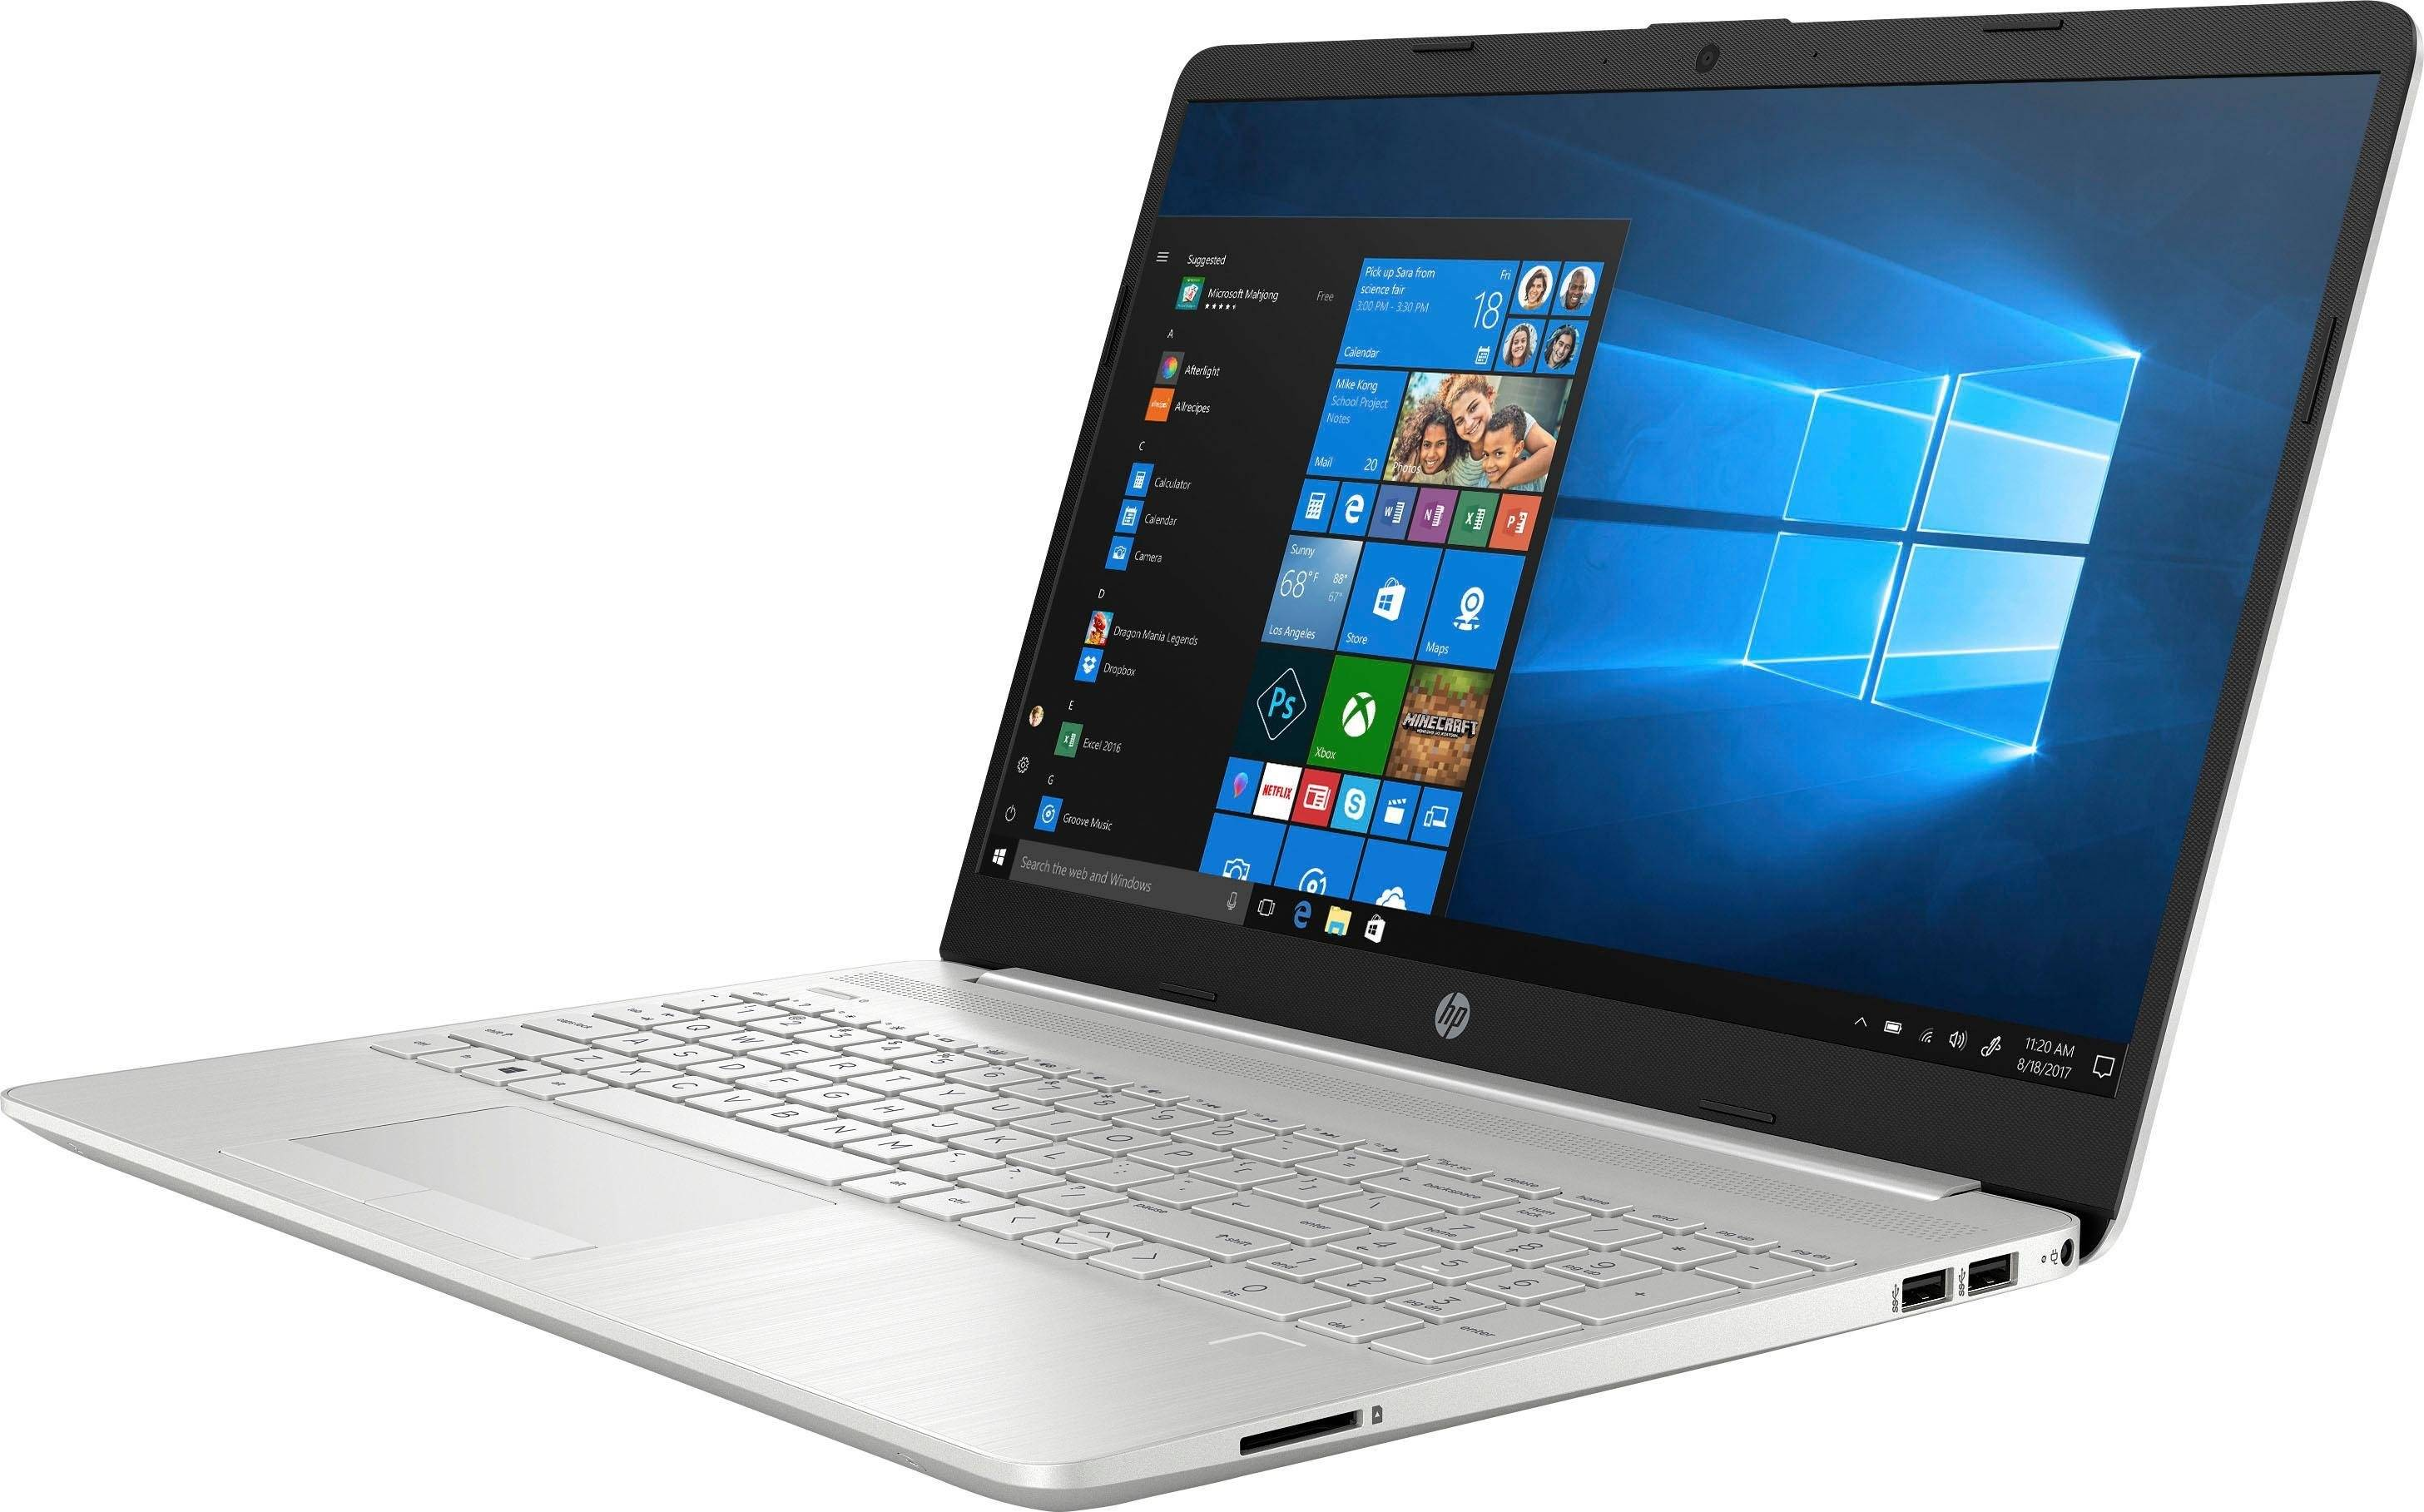 HP 15-dw1266ng Notebook (39,6 cm/15,6 Zoll, Intel Core i5, GeForce MX130, 1000 GB HDD, 256 GB SSD, inkl. Office-Anwendersoftware Microsoft 365 Single im Wert von 69 Euro), Natural Silver